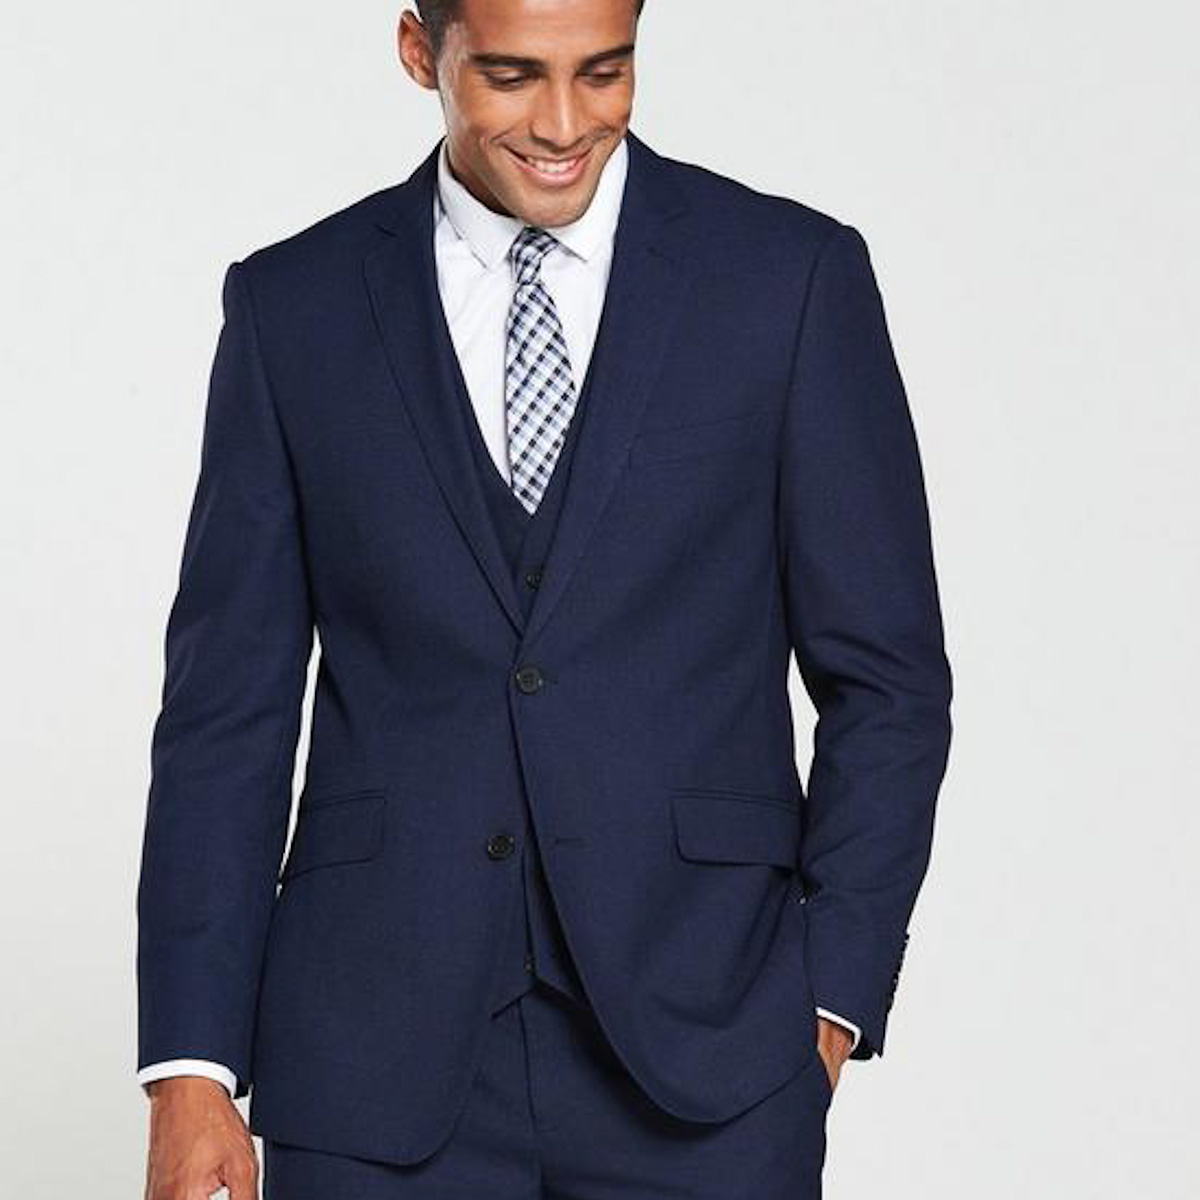 summer-staples-2020-very-formal-suit-man-for-himself